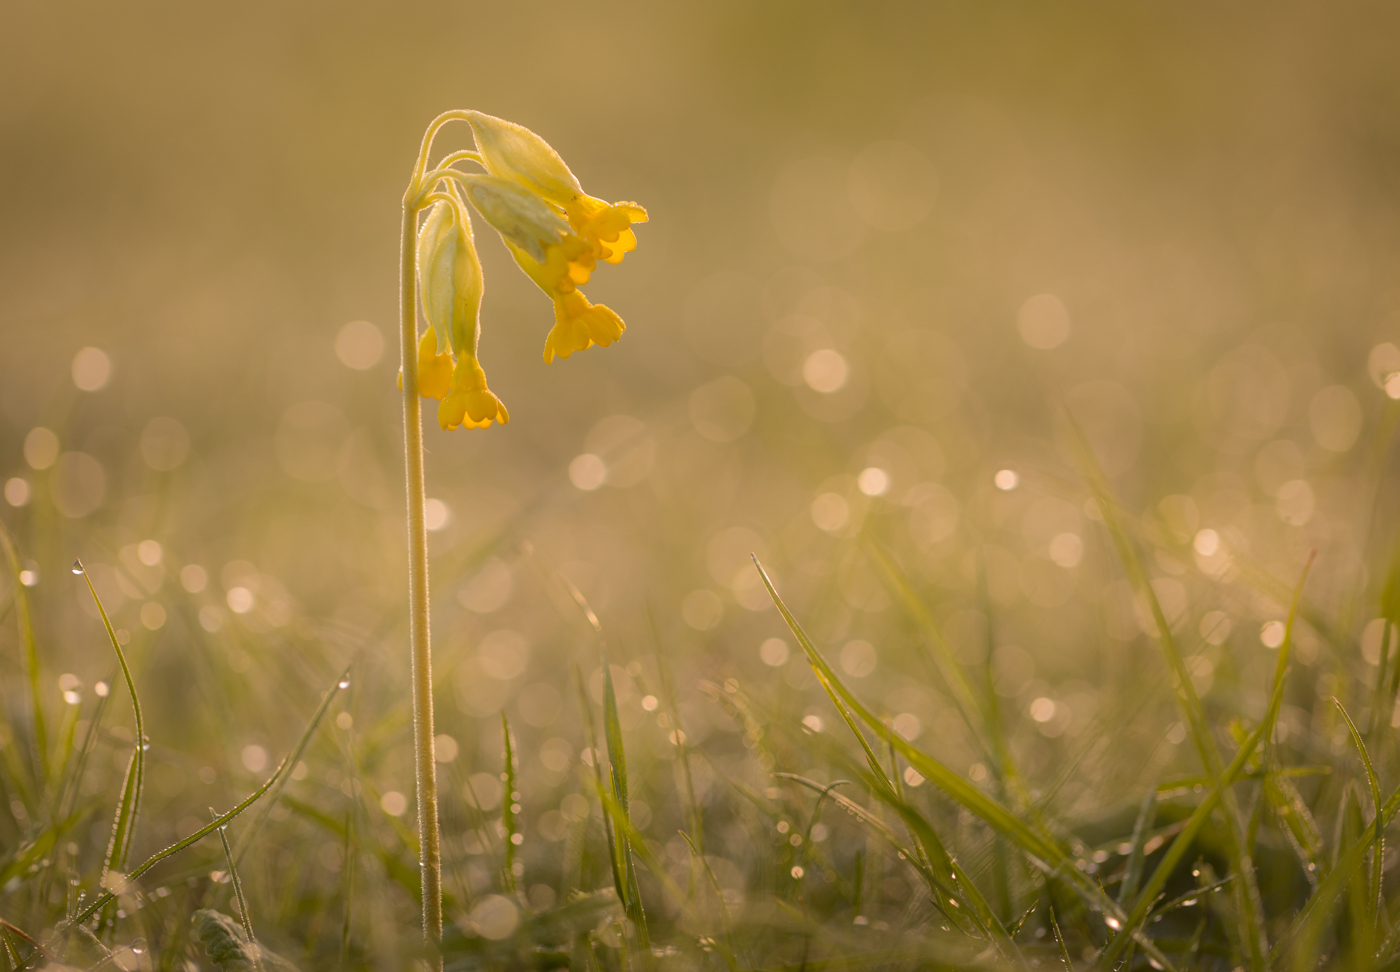 1st Place - Cowslip (Primula veris) by Jason Boswell